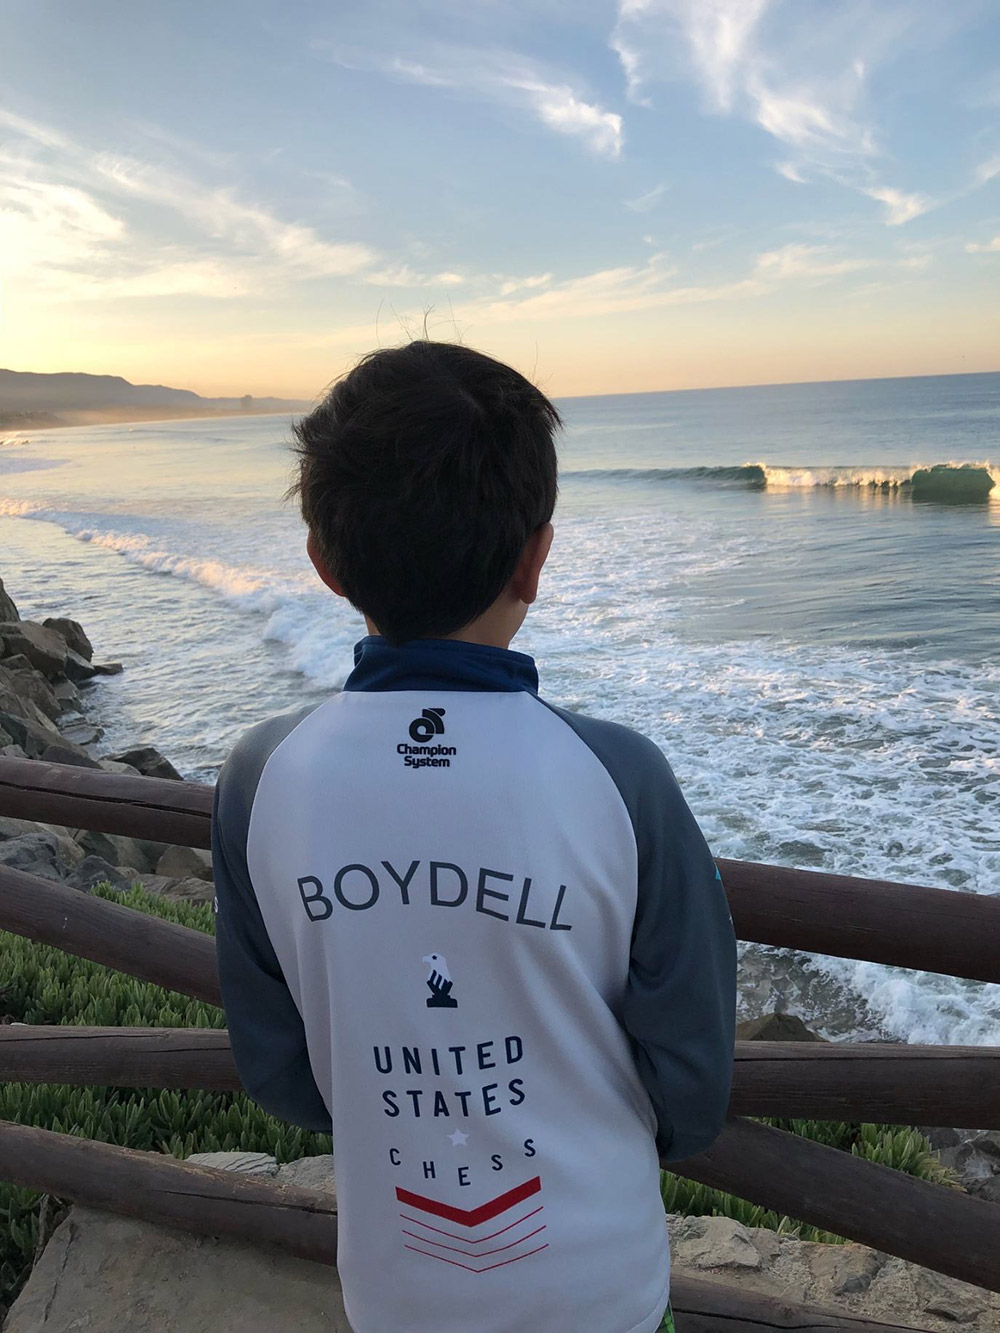 Oliver takes in the Pacific Ocean during a break from competition at the North American Youth Chess Championships in Mexico. November, 2018